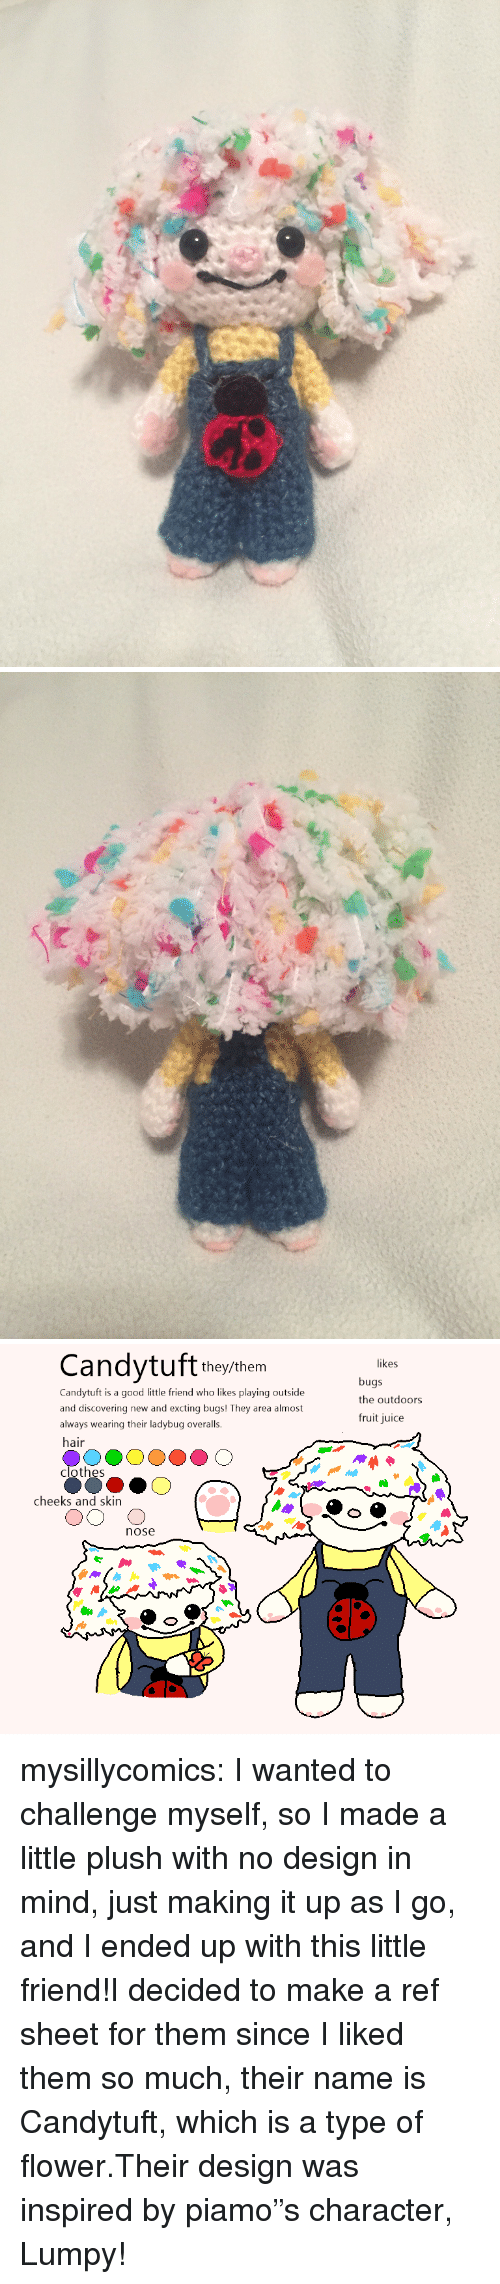 """Clothes, Juice, and Target: Candytuf theythem  likes  Candytuft is a good little friend who likes playing outside  and discovering new and excting bugs! They area almost  always wearing their ladybug overalls.  hair  bugs  the outdoors  fruit juice  clothes  cheeks and skin  nose mysillycomics:  I wanted to challenge myself, so I made a little plush with no design in mind, just making it up as I go, and I ended up with this little friend!I decided to make a ref sheet for them since I liked them so much, their name is Candytuft, which is a type of flower.Their design was inspired by piamo""""scharacter, Lumpy!"""